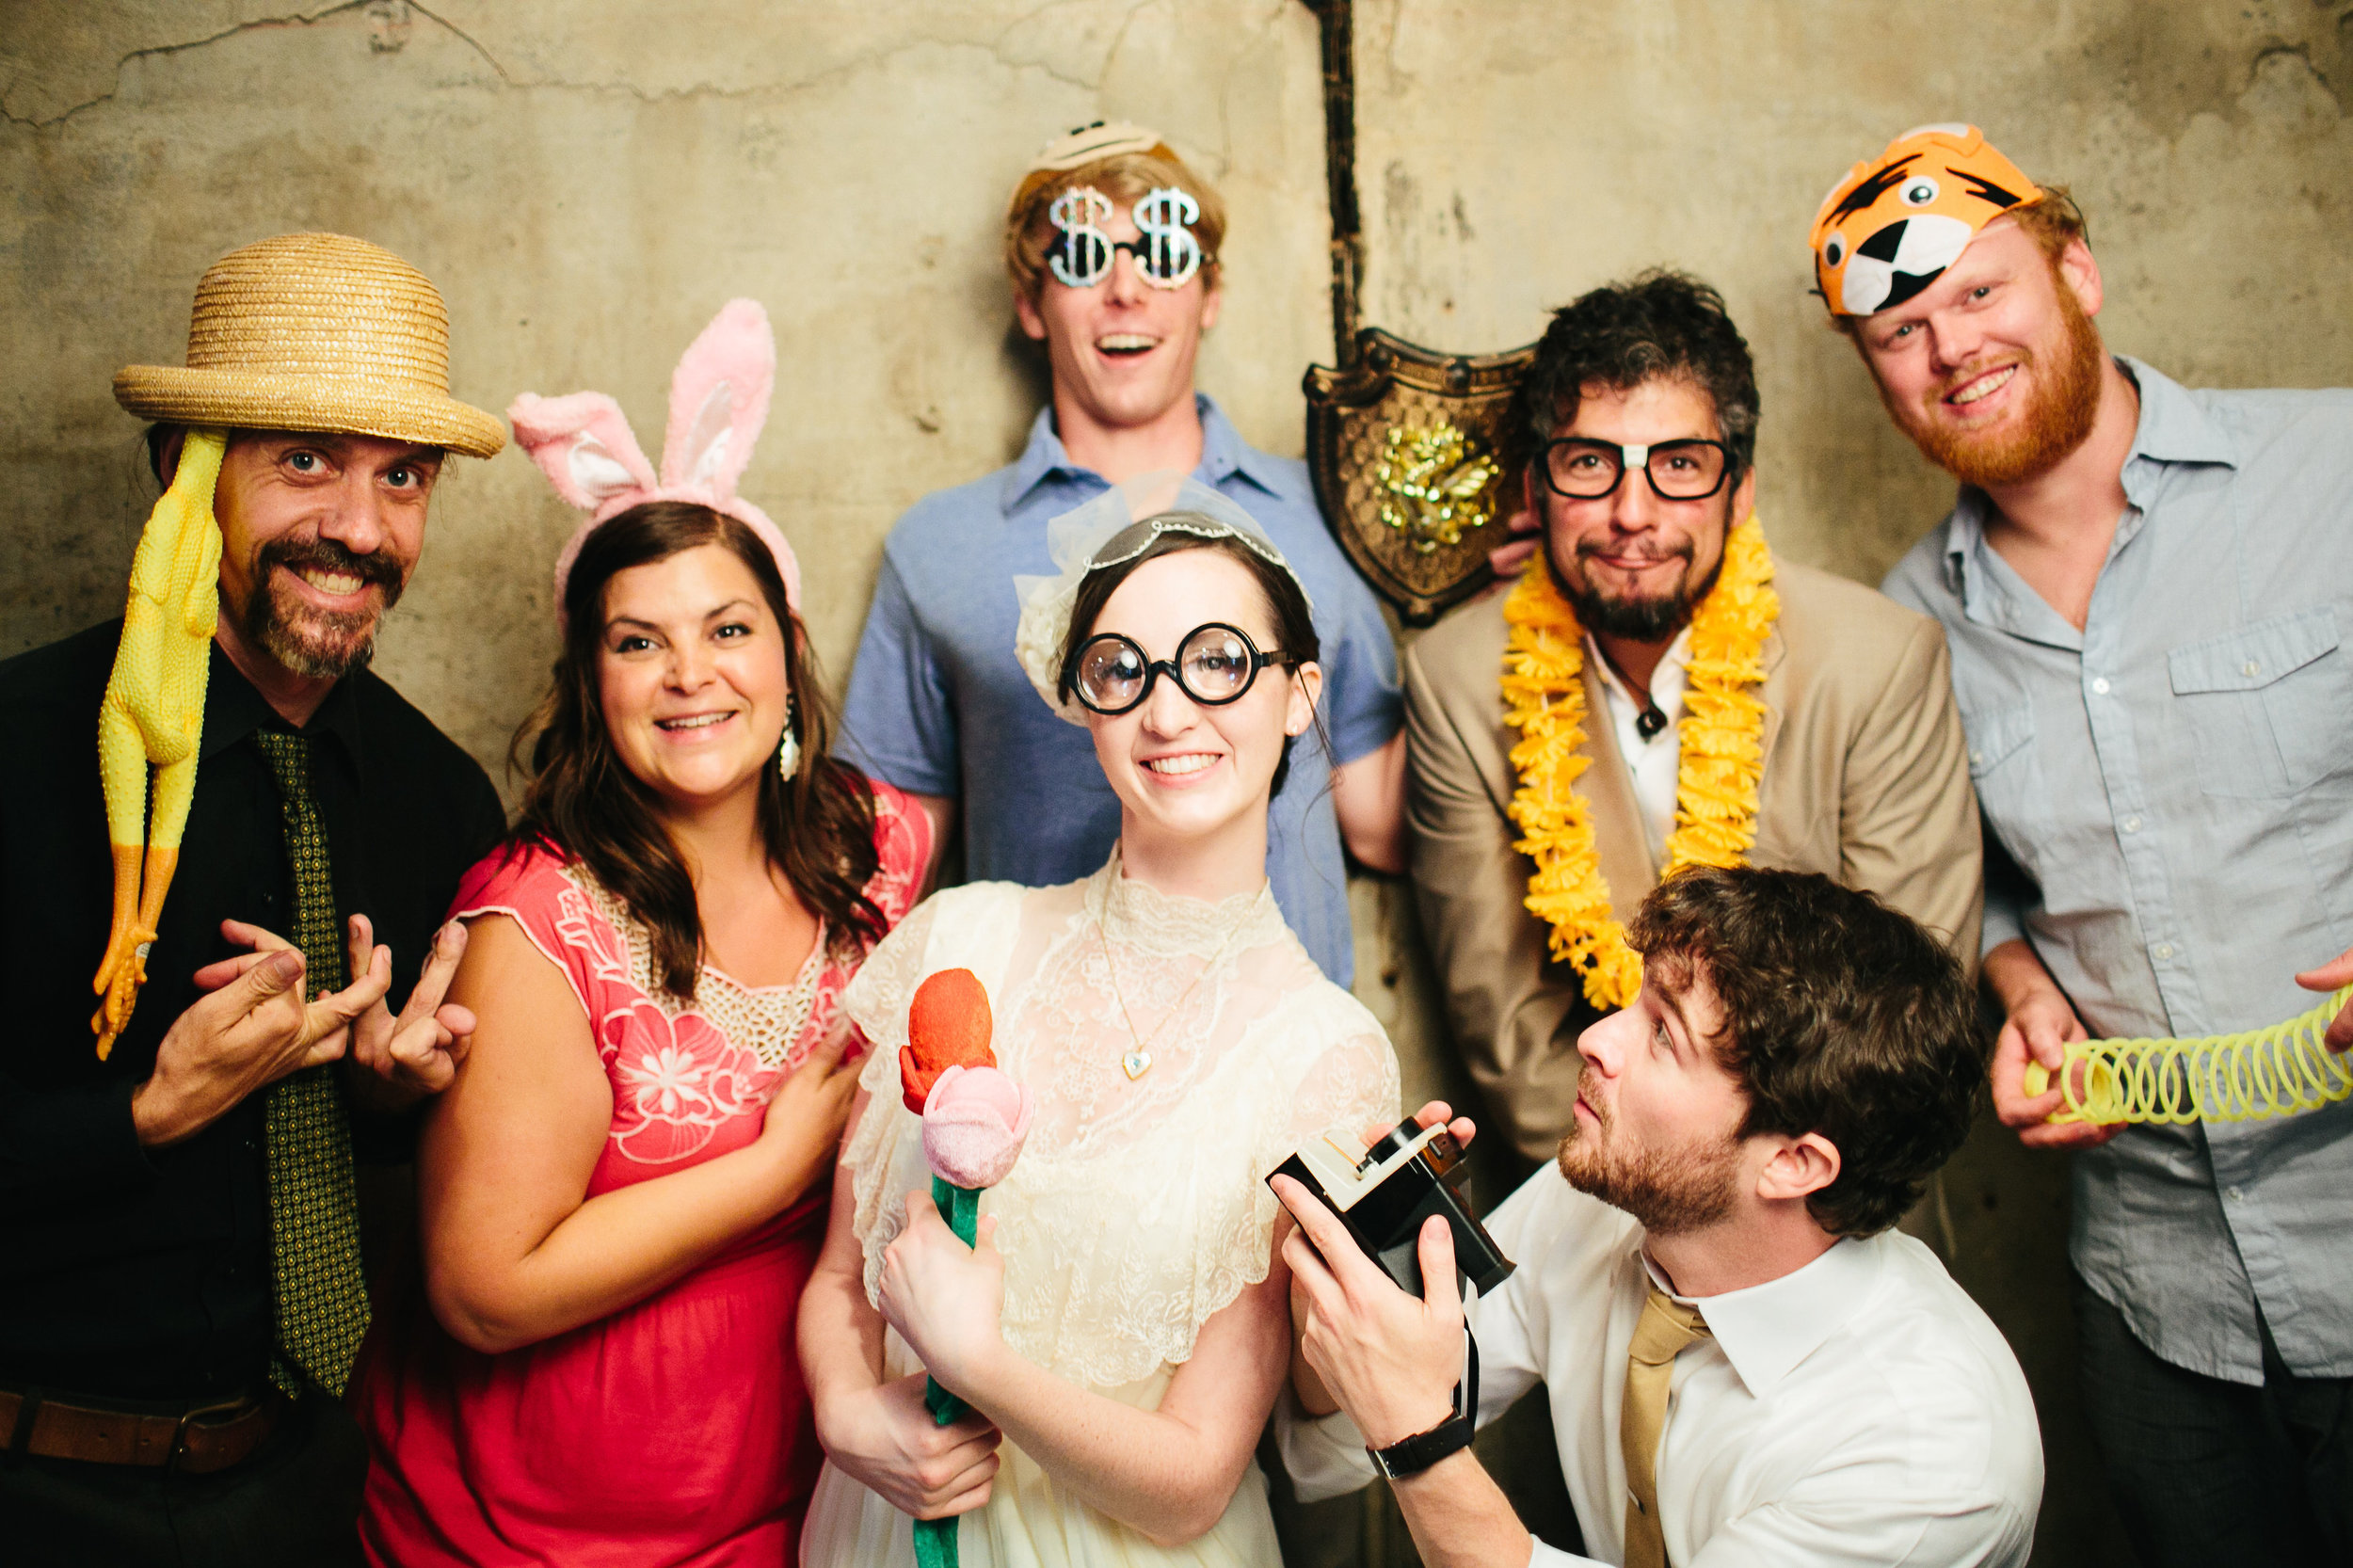 Miranda_Ryan_The_Black_Lillies_Knoxville_The_Standard_Simply_Yours_Weddings_Alex_Bee_Photo_Photobooth.JPG